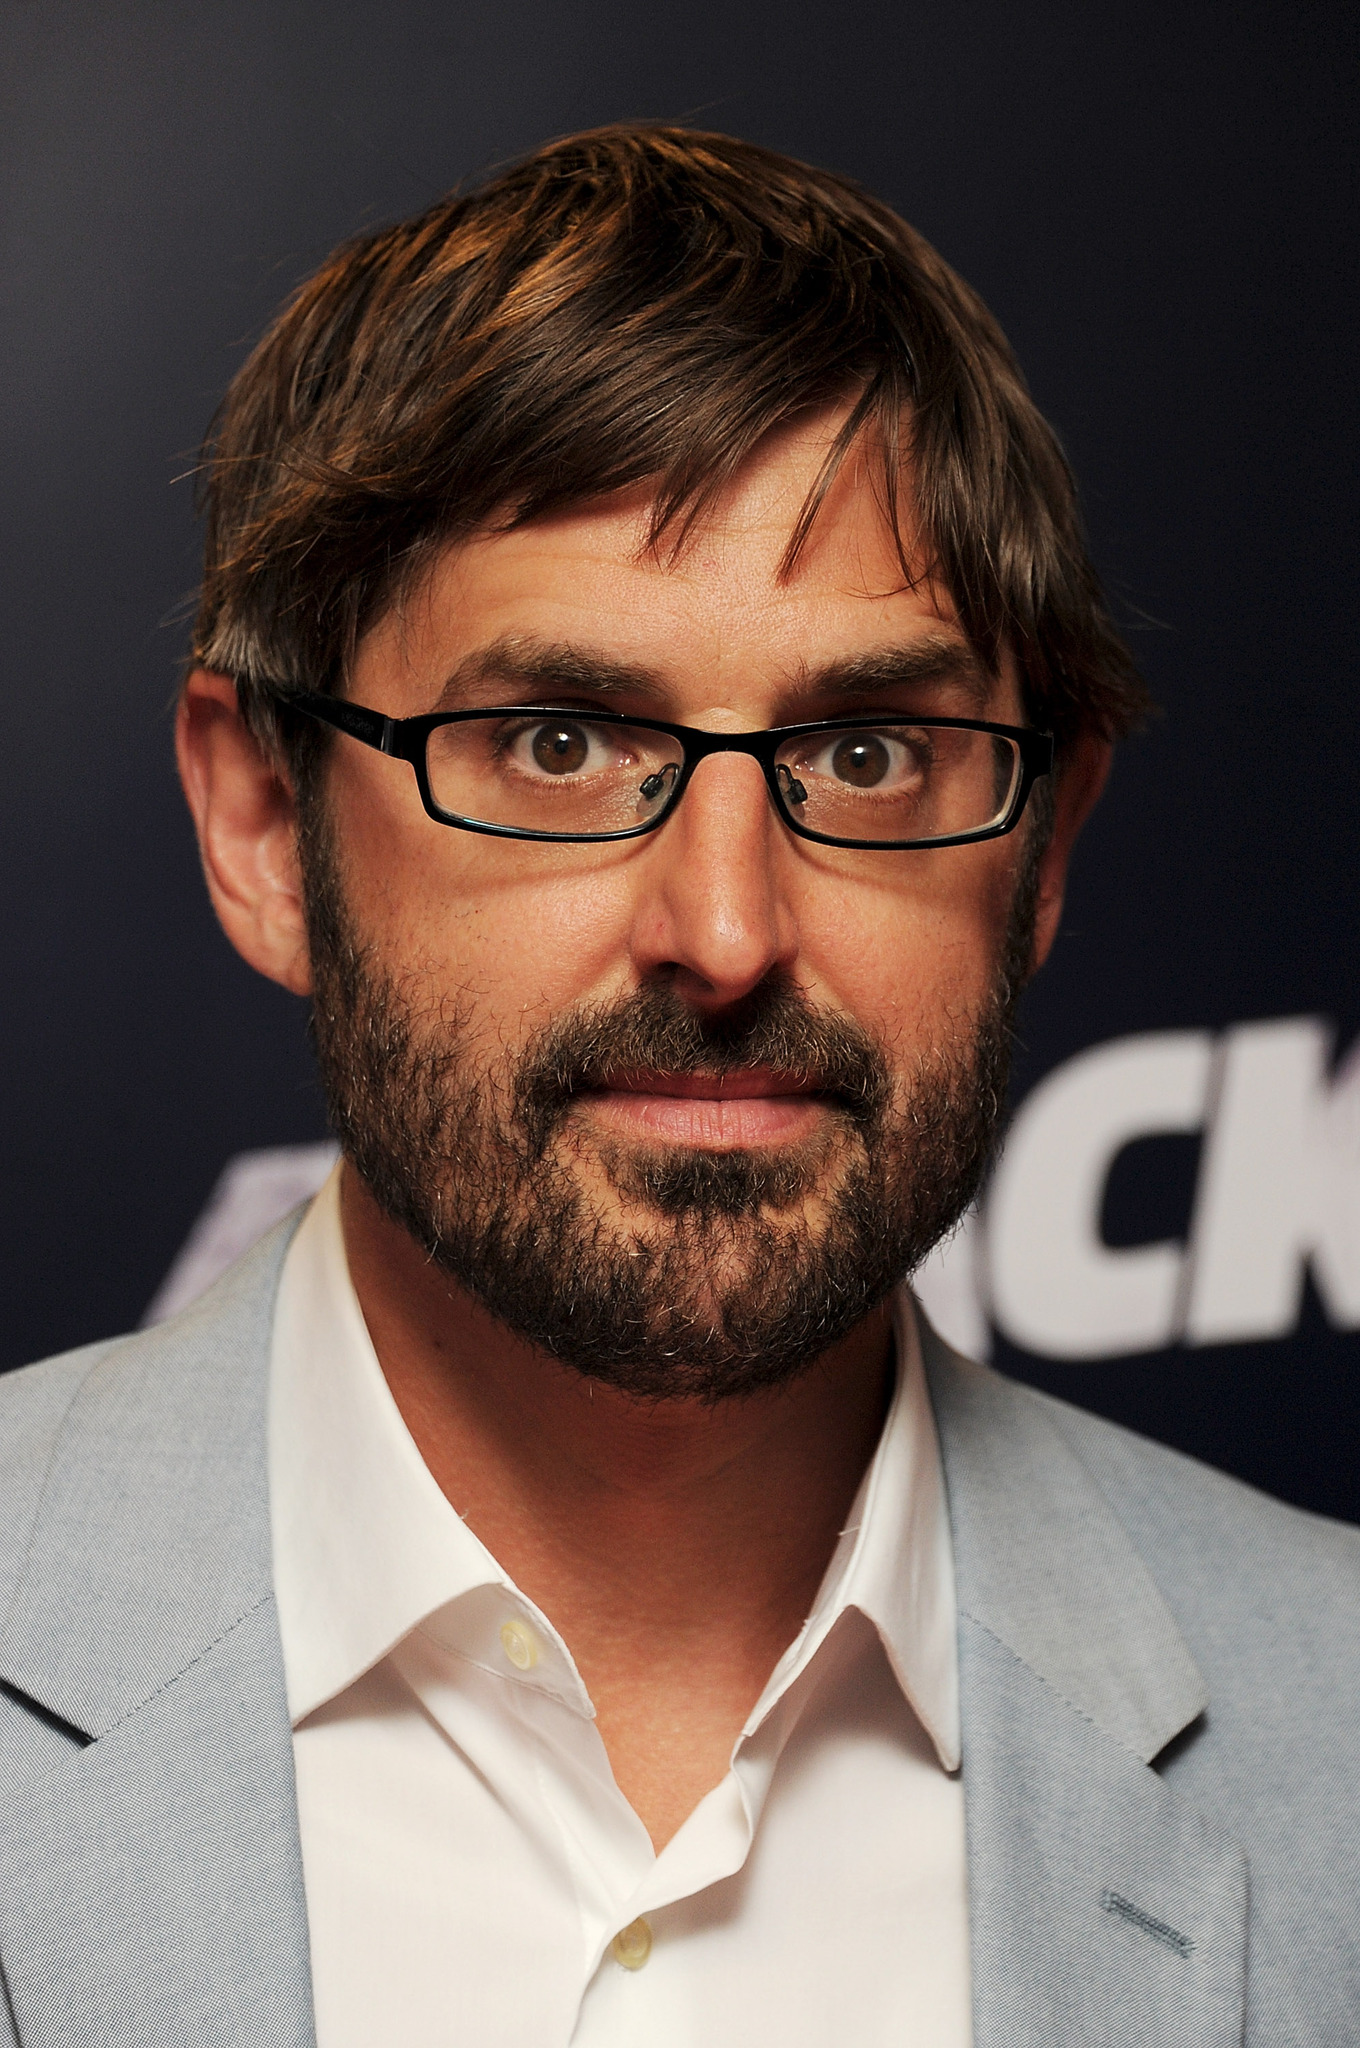 How tall is louis theroux